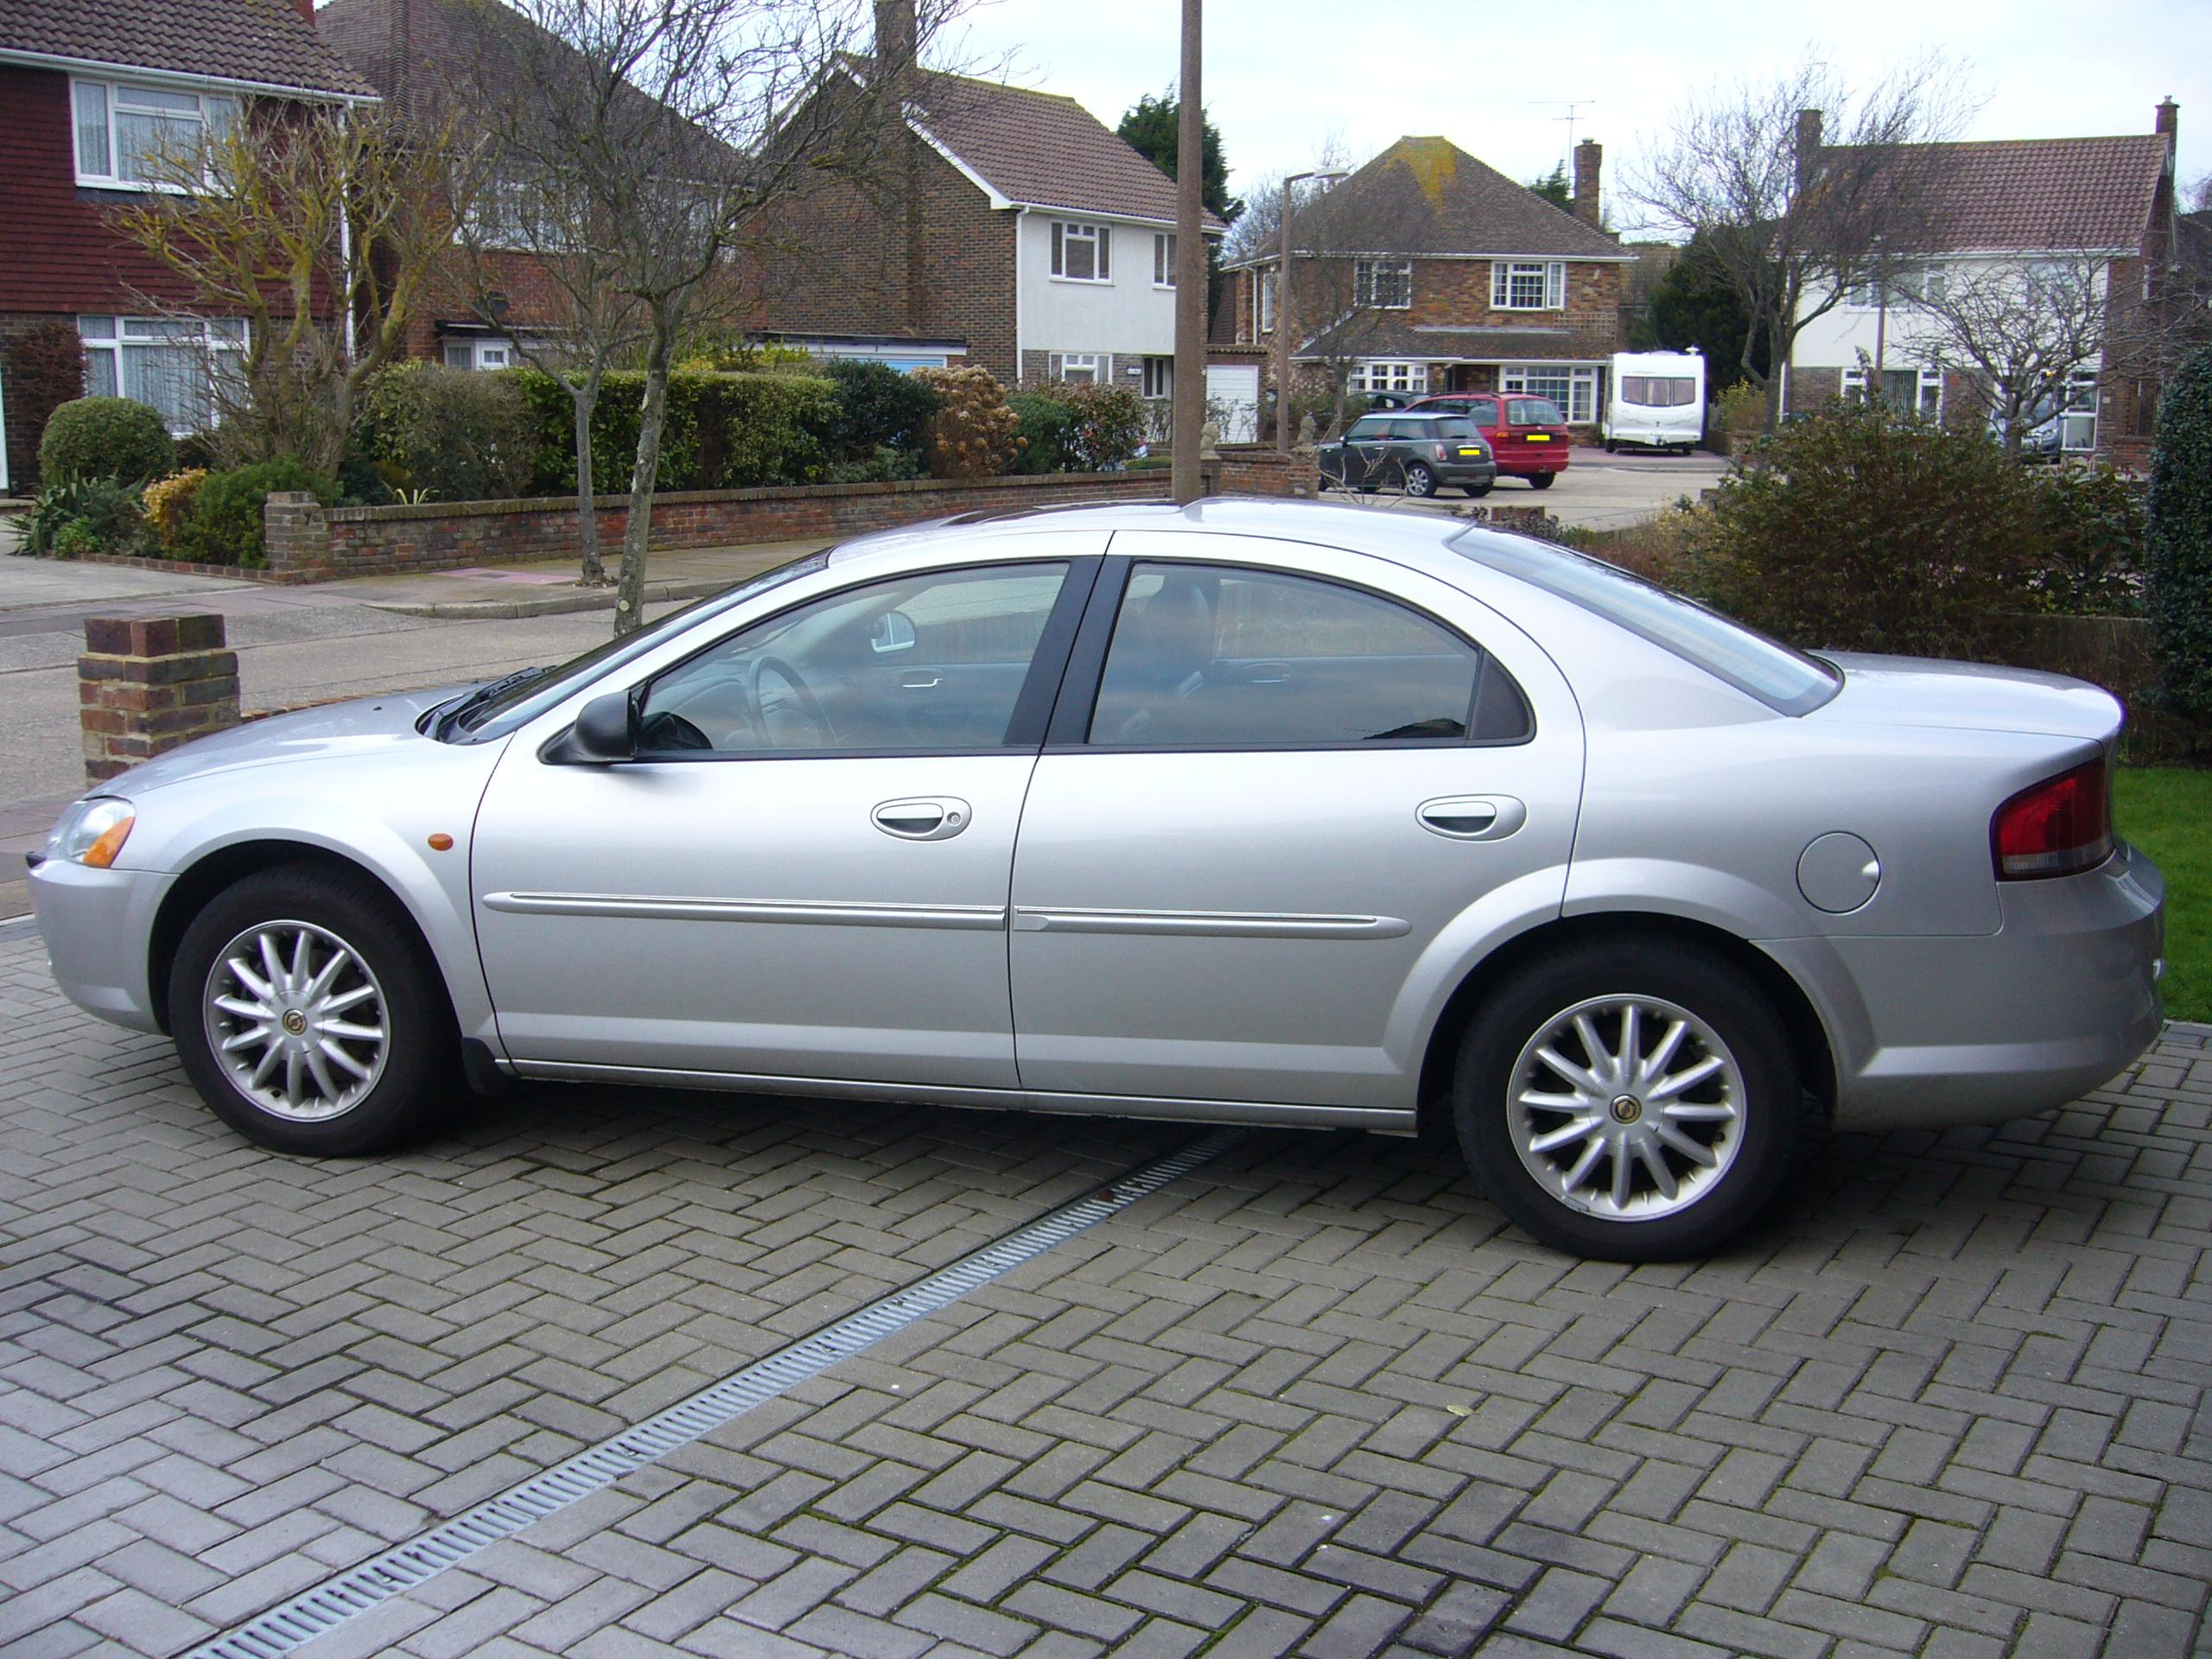 2003_Chrysler_Sebring_sedan_%28European_